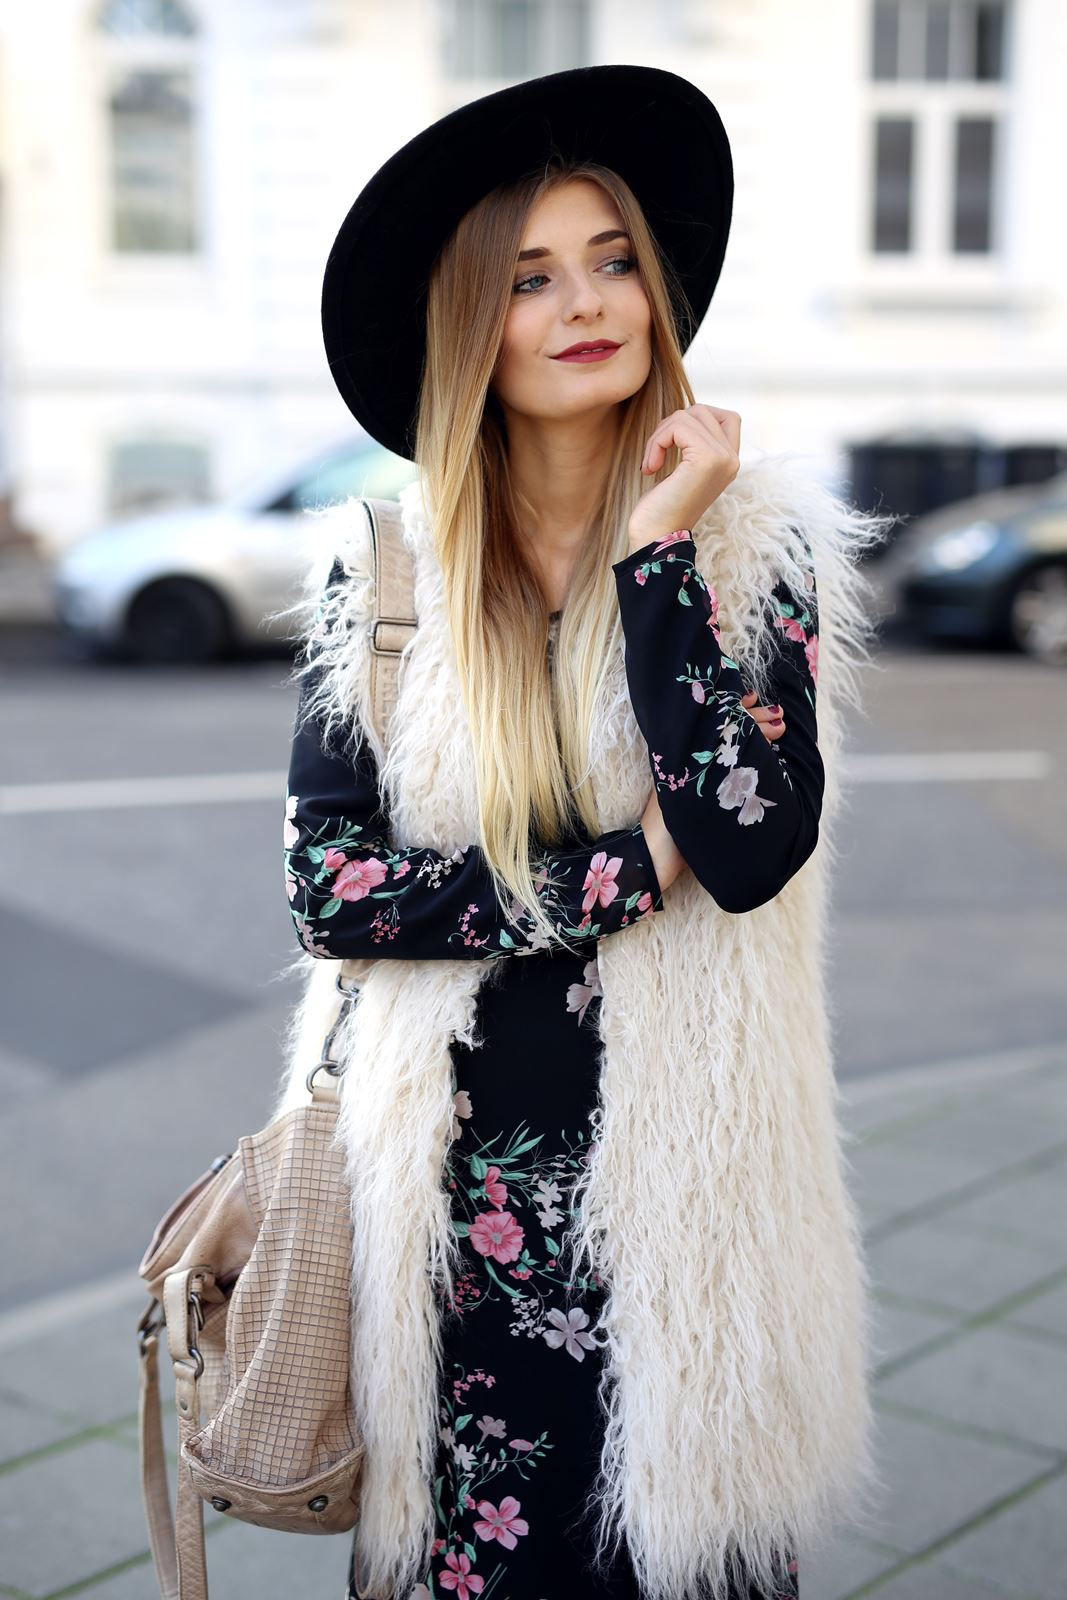 modeblog-fashion-blog-outfit-herbst-fake-fur-maxi-kleid-8